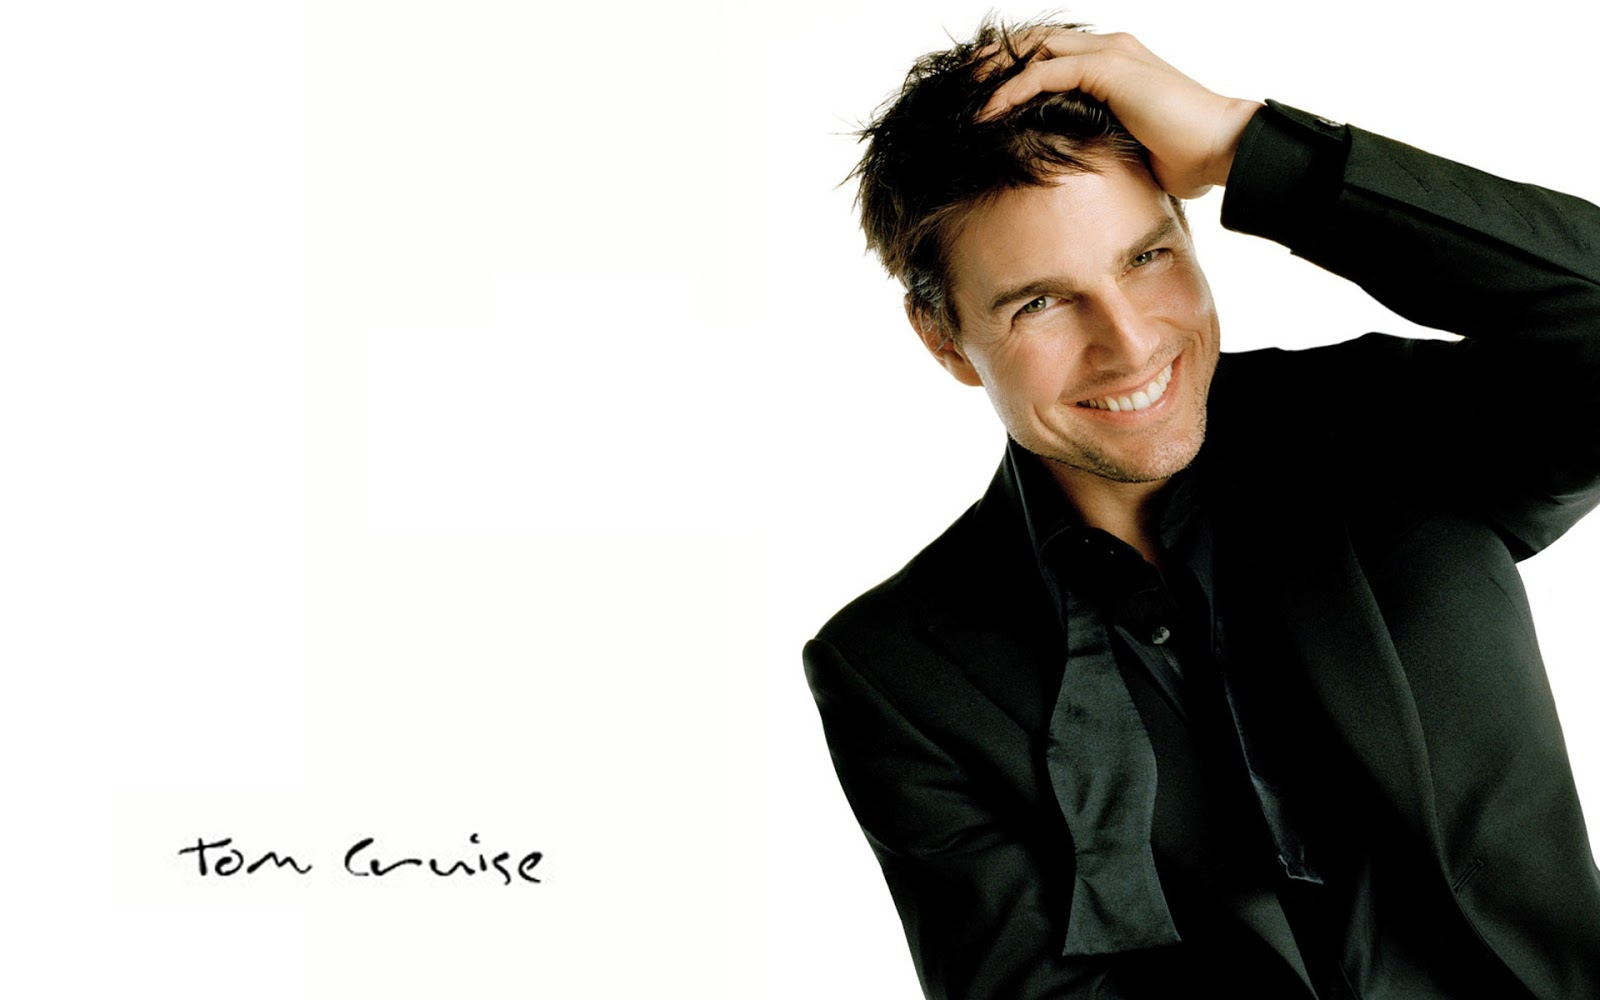 Nude Porn Gallery Tom Cruise New Cool Hd Wallpaper 2012-2013-3152